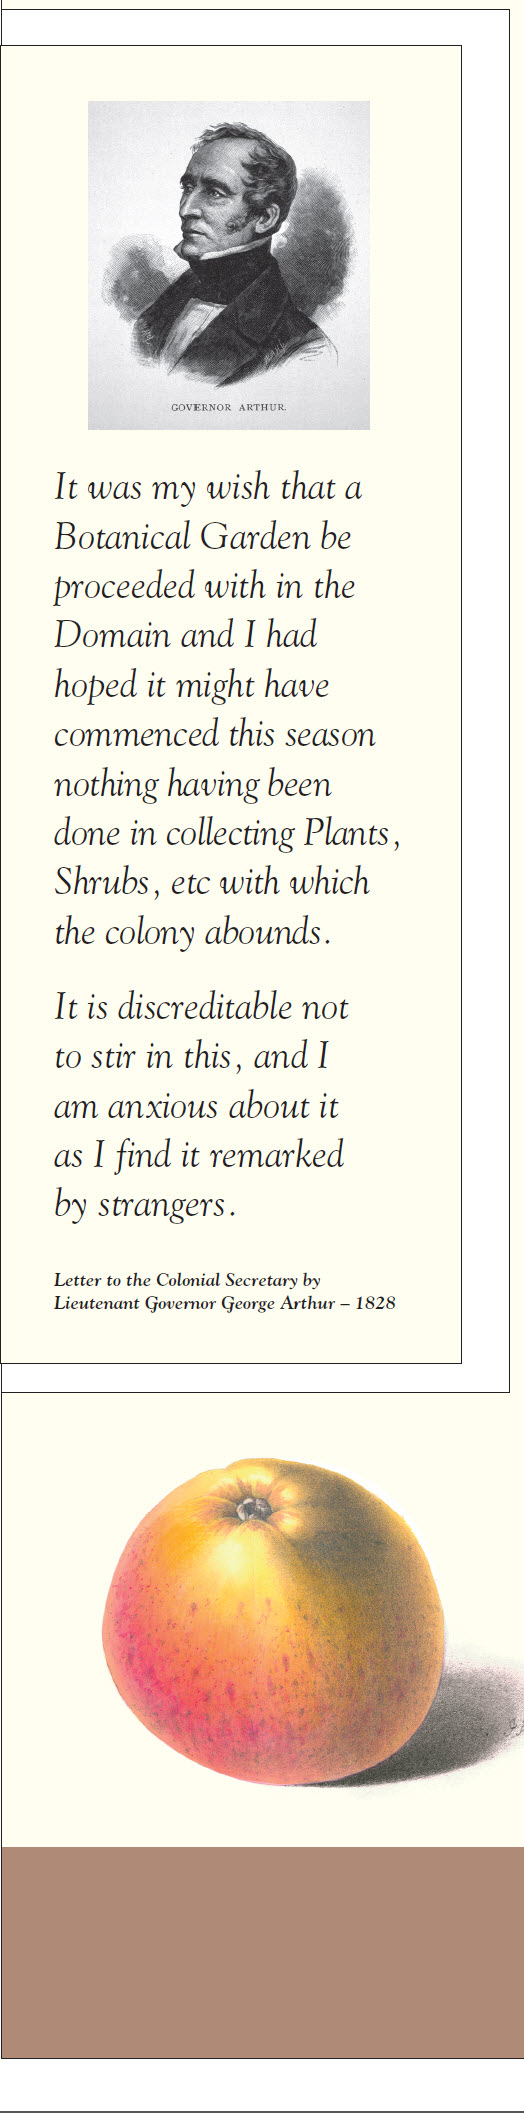 Governor Arthur quip and detail: It was my wish that a Botanical Garden be proceeded with in the Domain and I had hoped it might have commenced this season nothing having been done in collecting Plants, Shrubs, etc with which the colony abounds. It is discreditable not to stir in this, and I am anxious about it as I find it remarked by strangers. Letter to the Colonial Secretary by Lieutenant Governor George Arthur – 1828